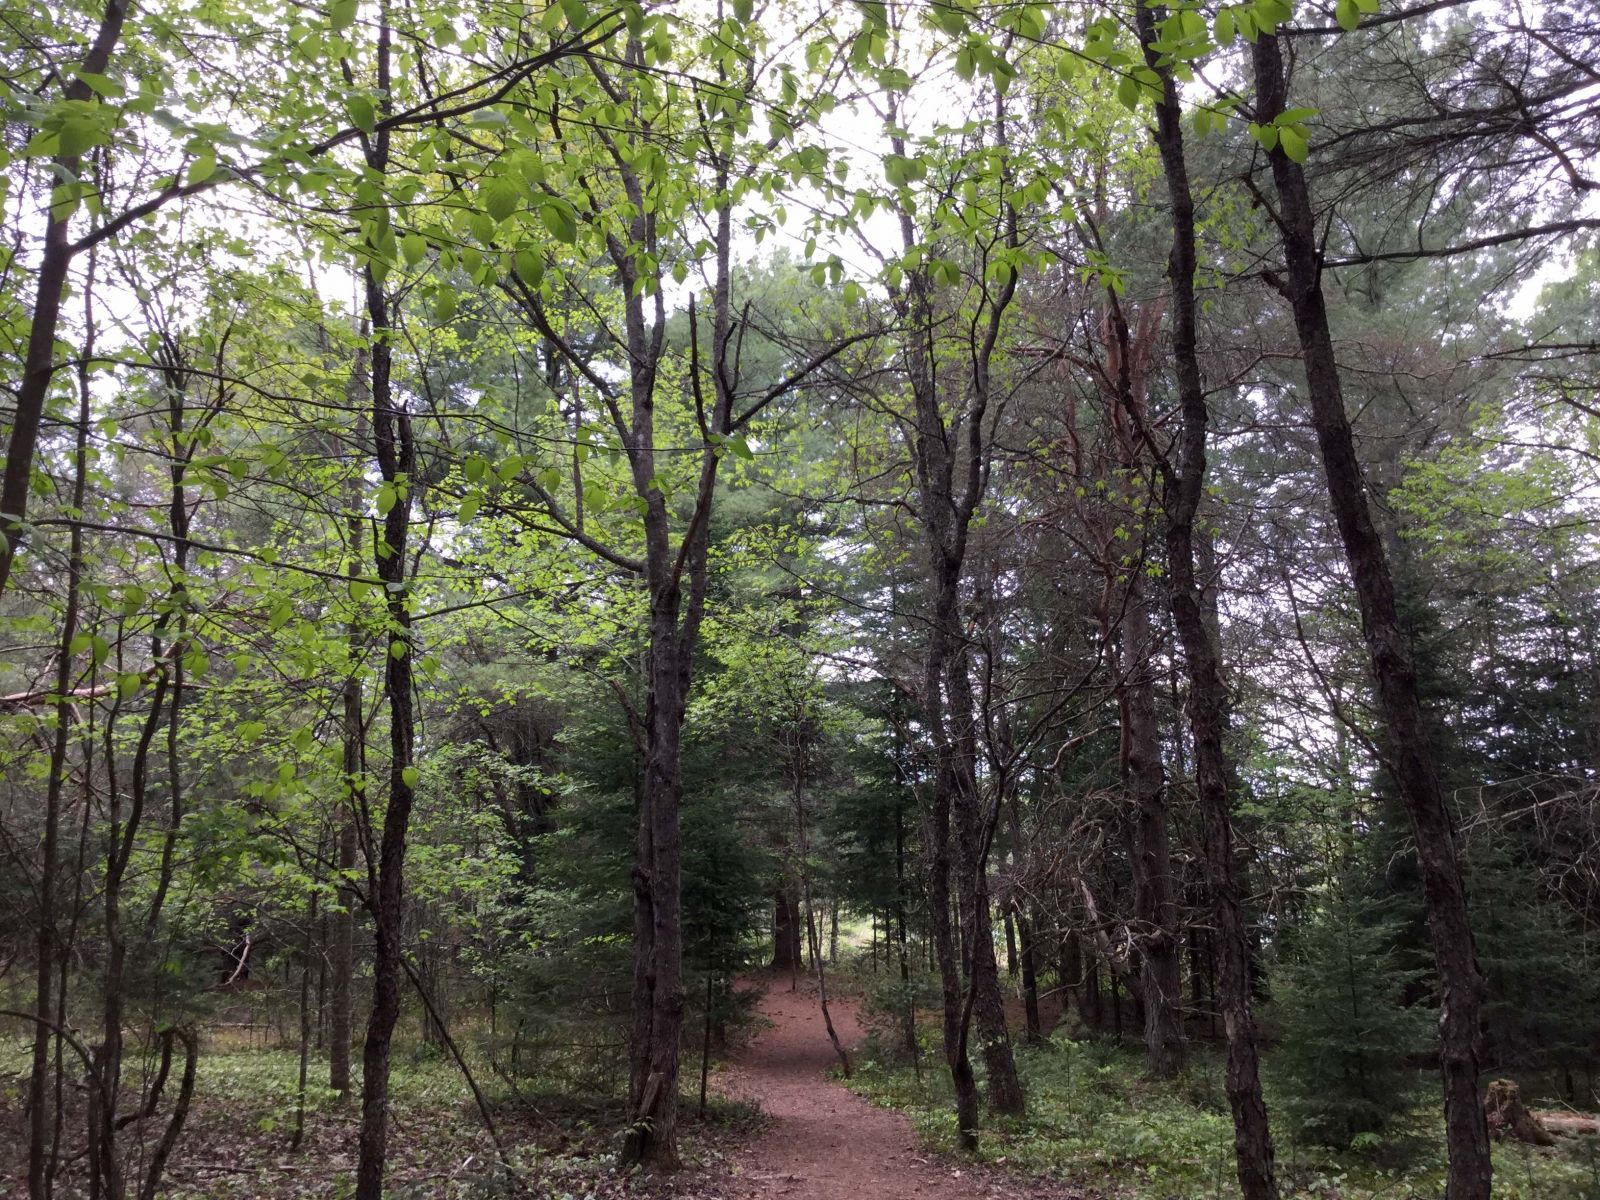 The many shades of new green are a bonus for spring hikers.